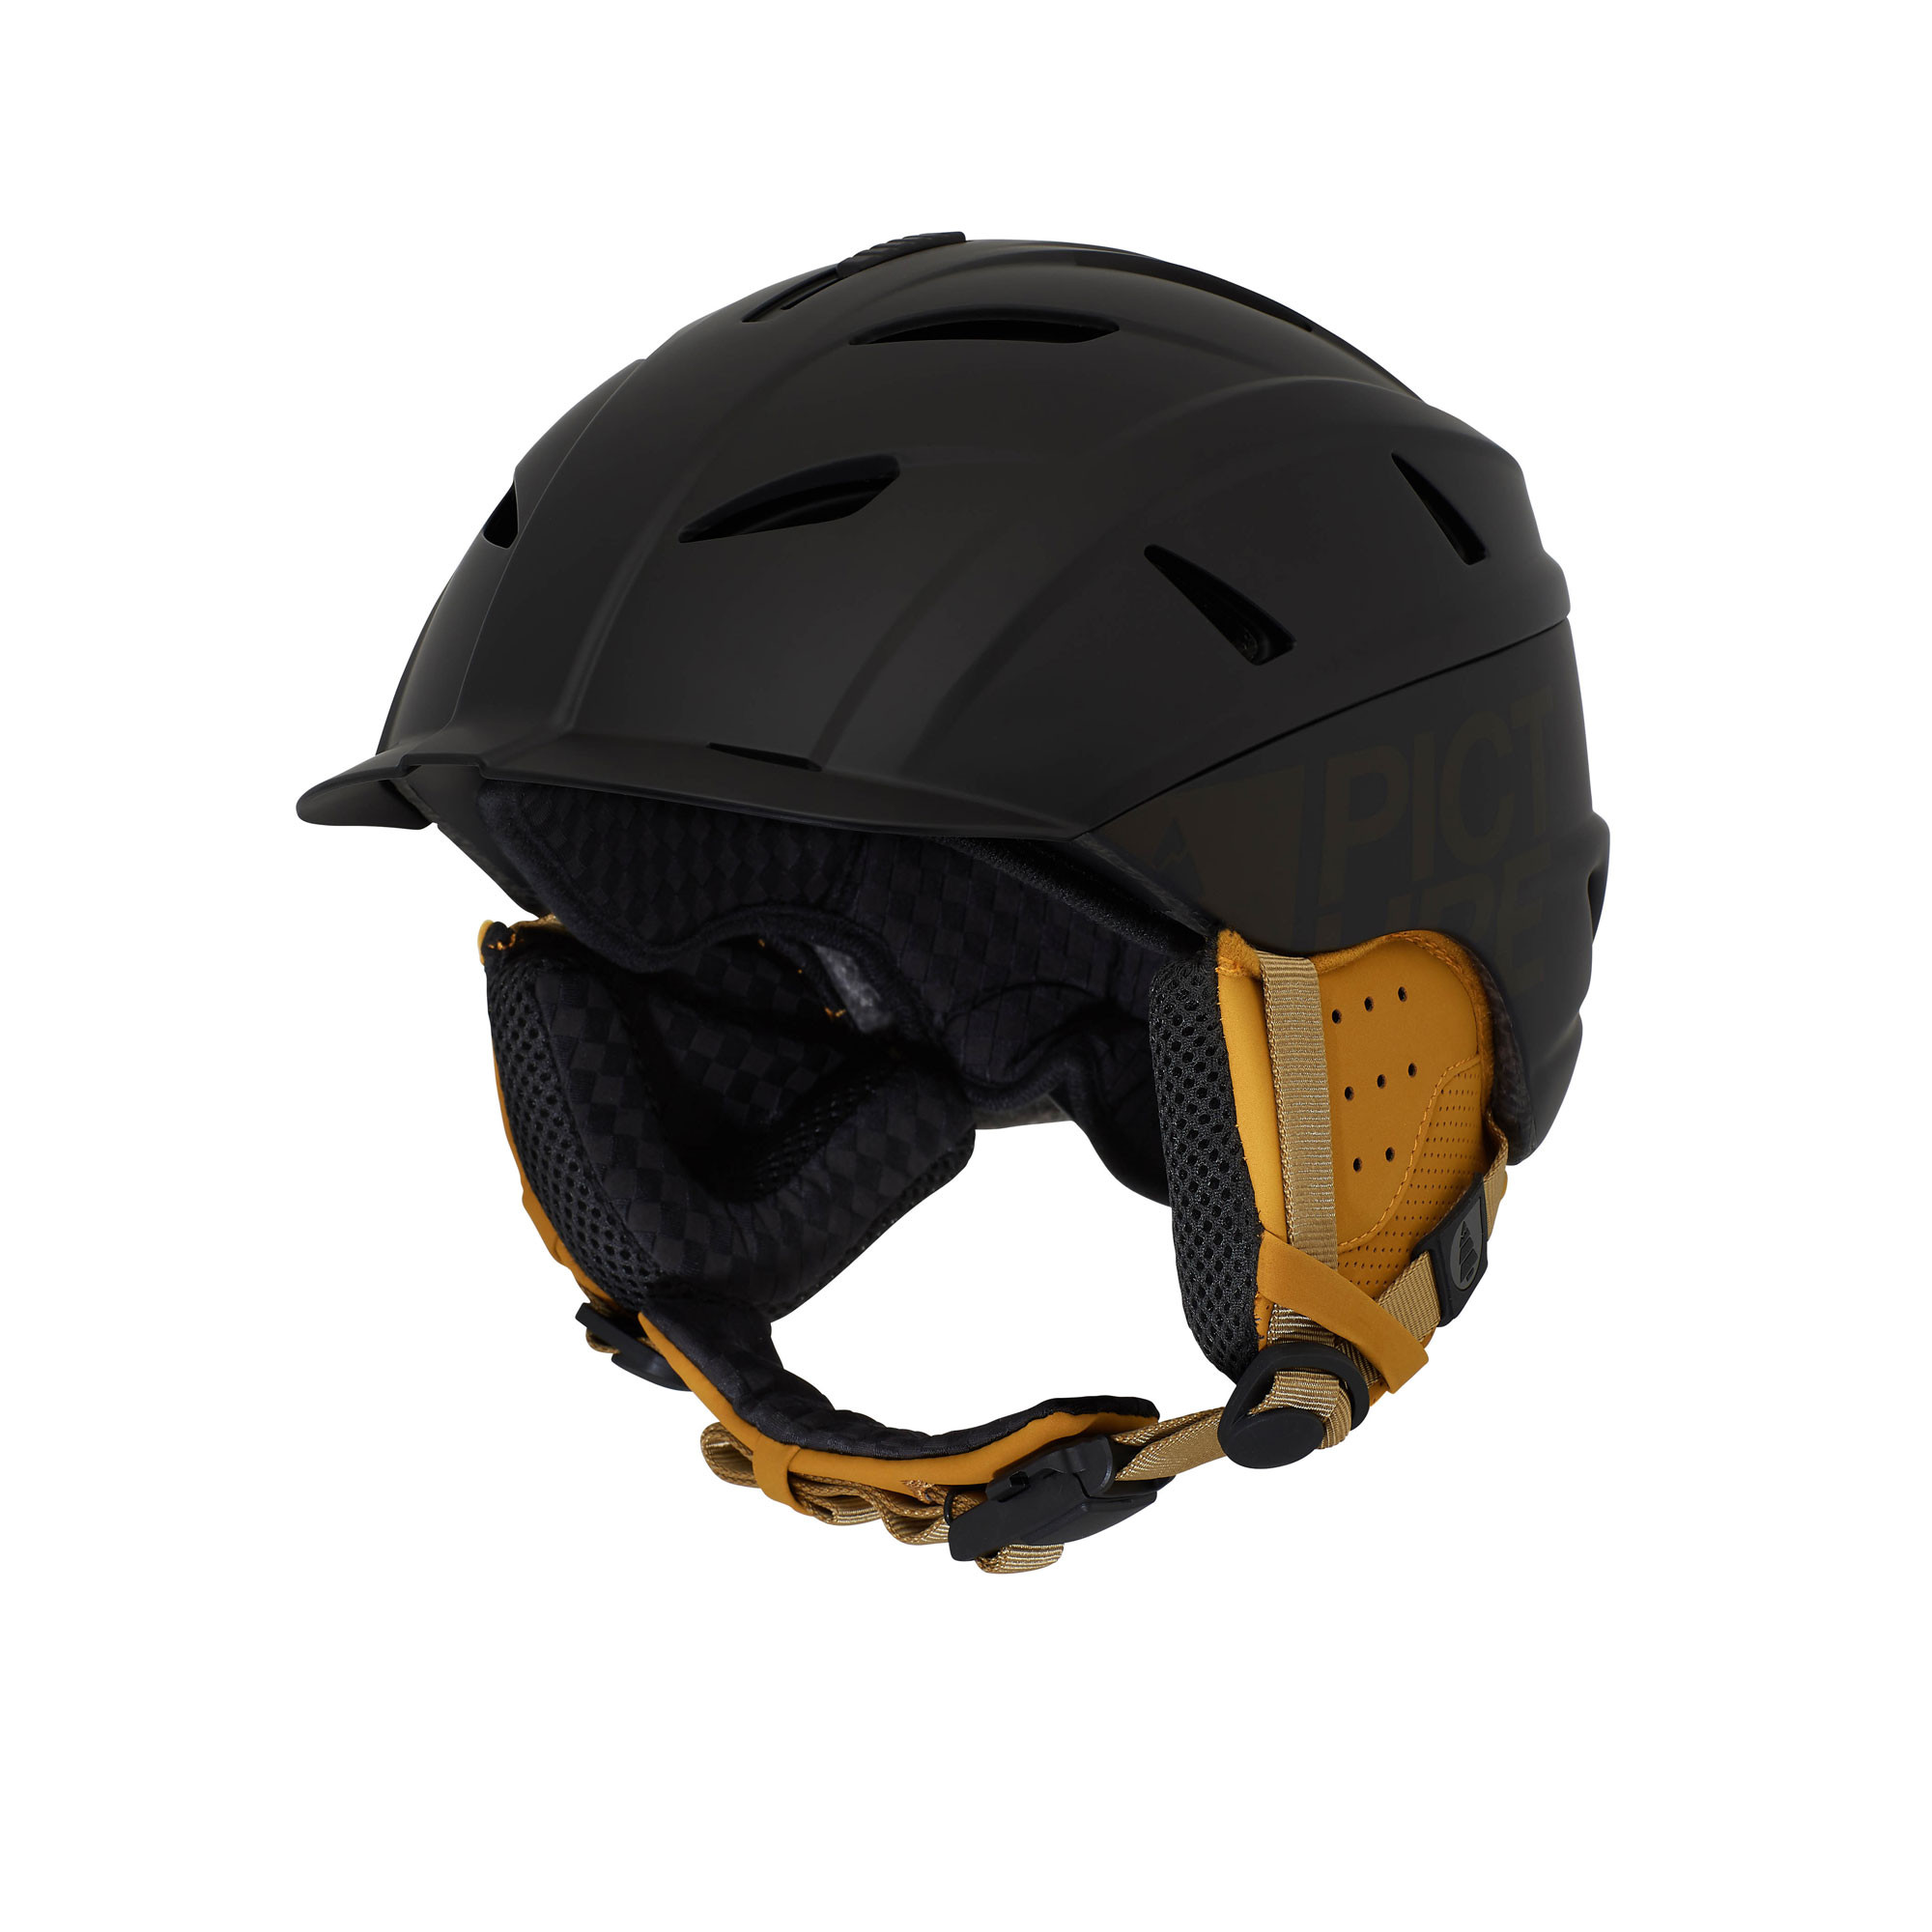 Casque de Ski Omega - Black